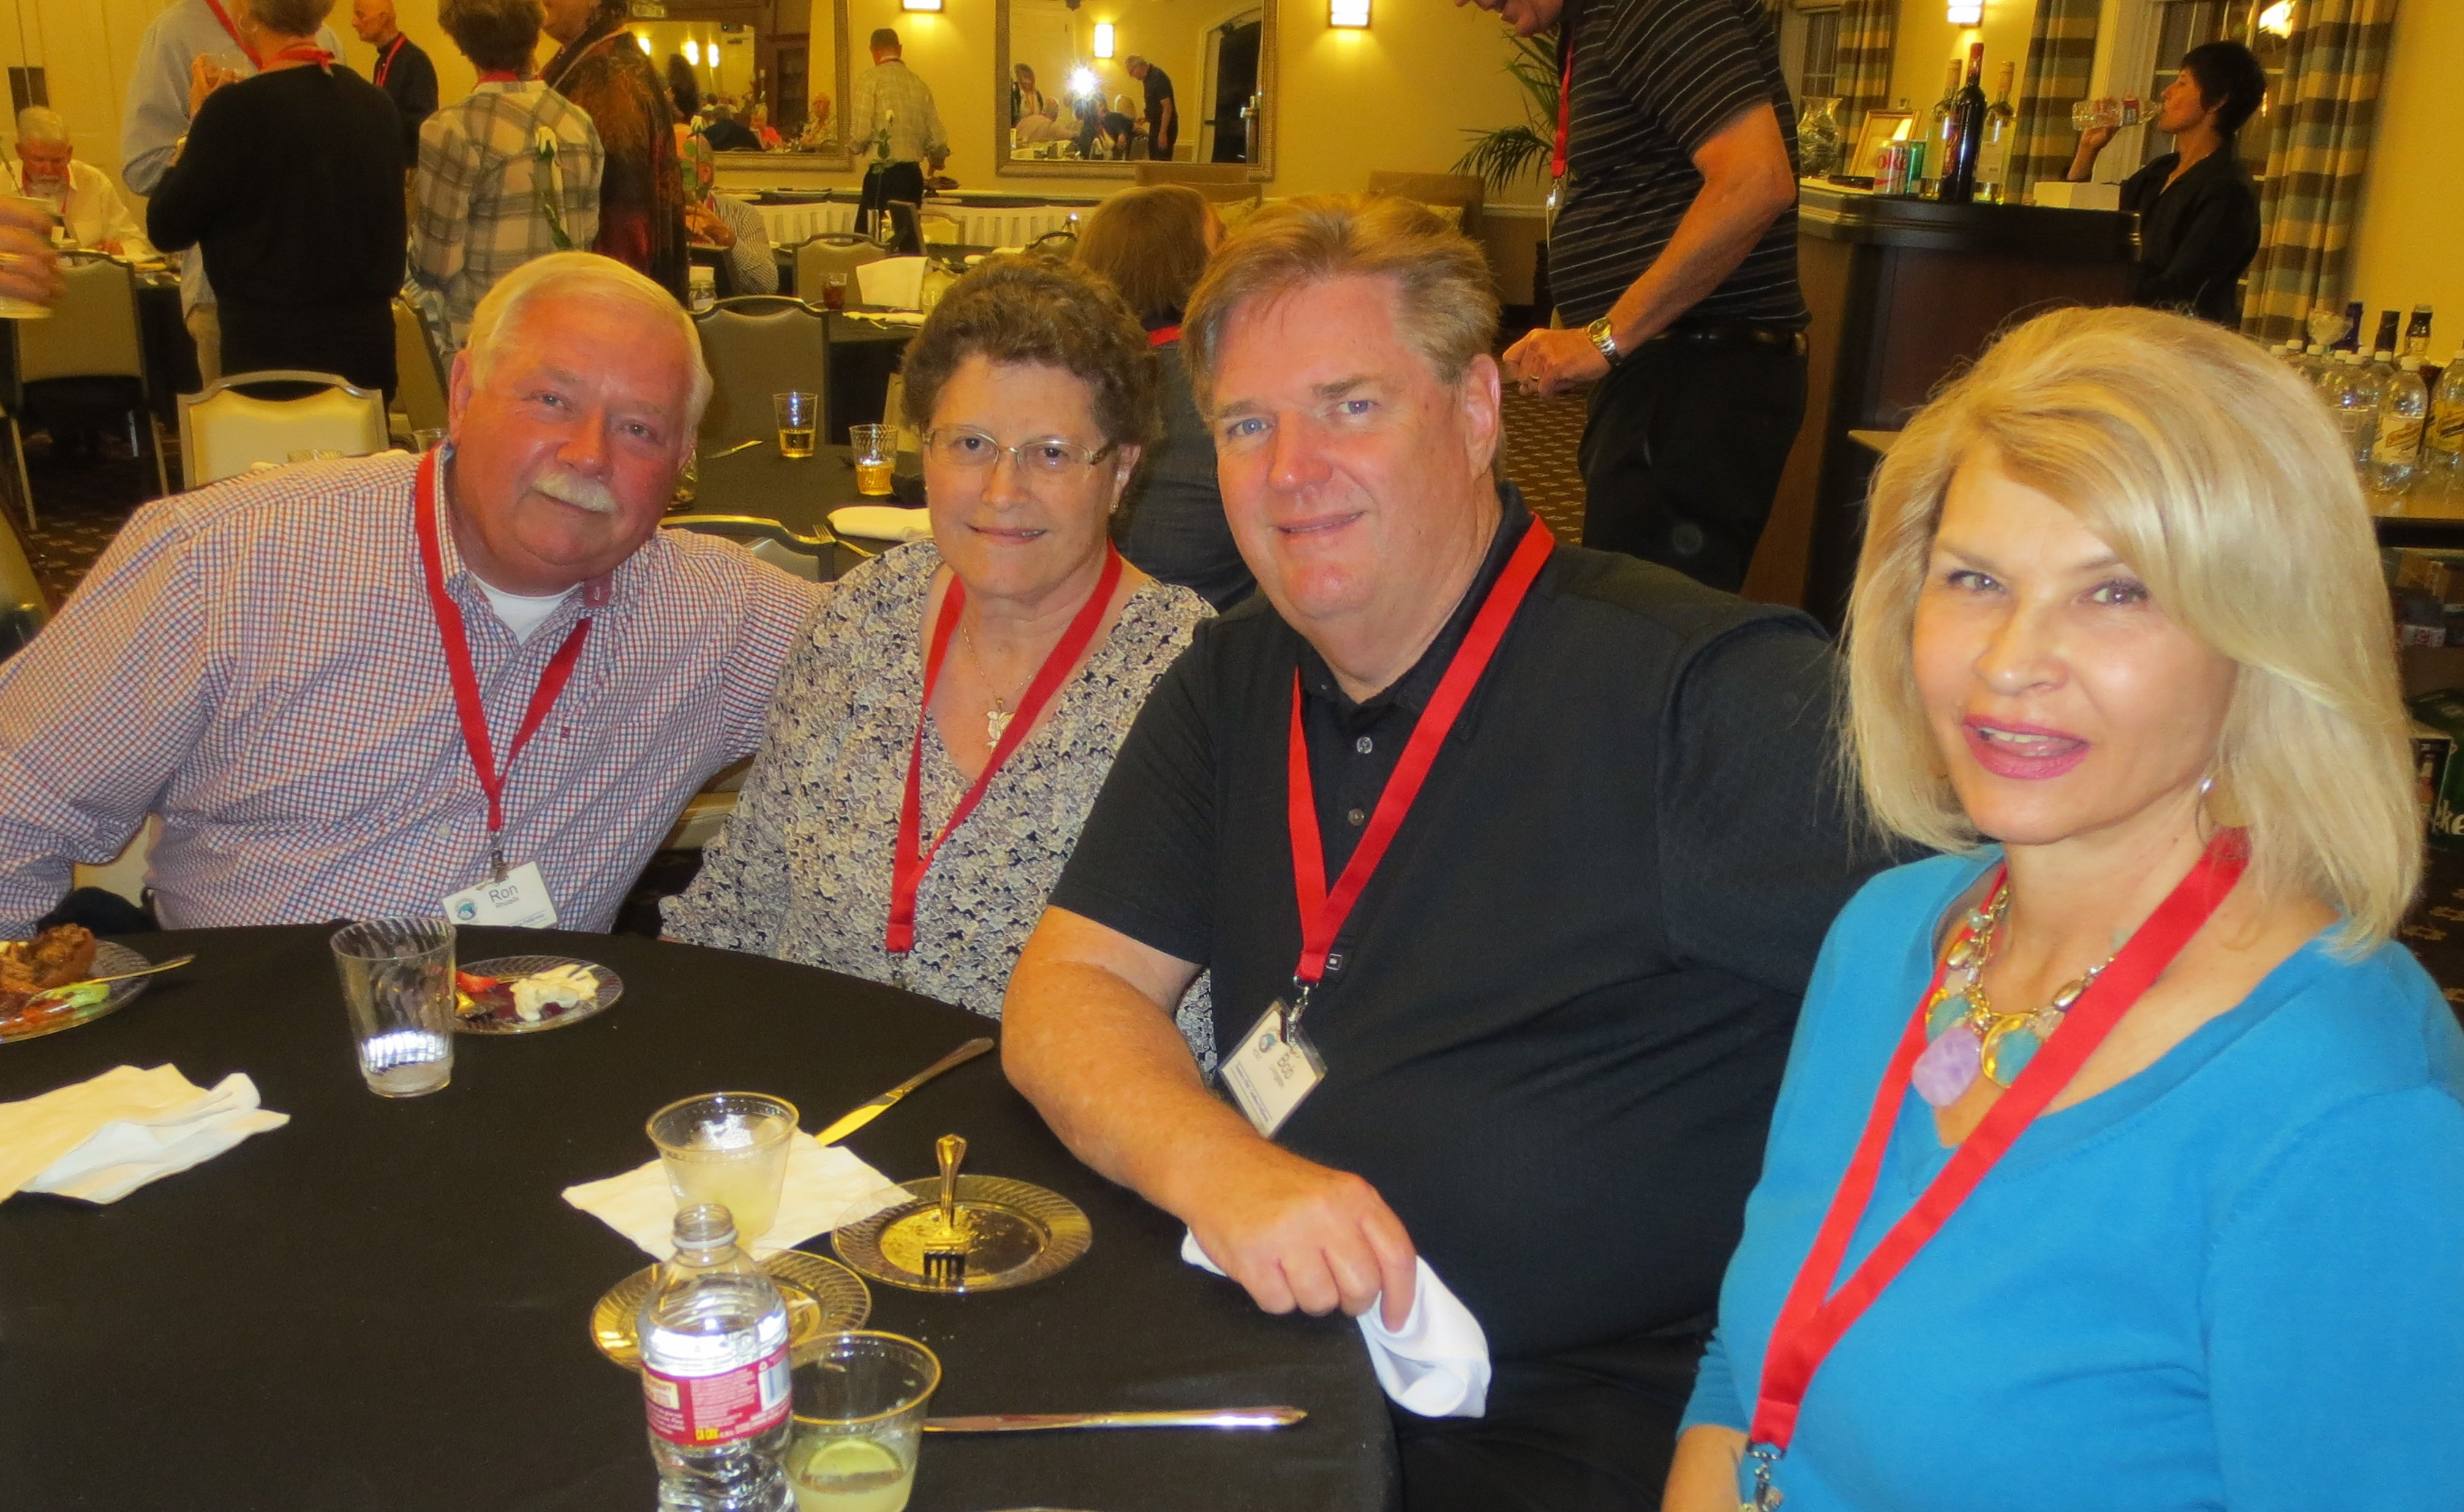 Ron and Janice Rhoads and Bob and Barbara Livingston at Opening Night Reception.